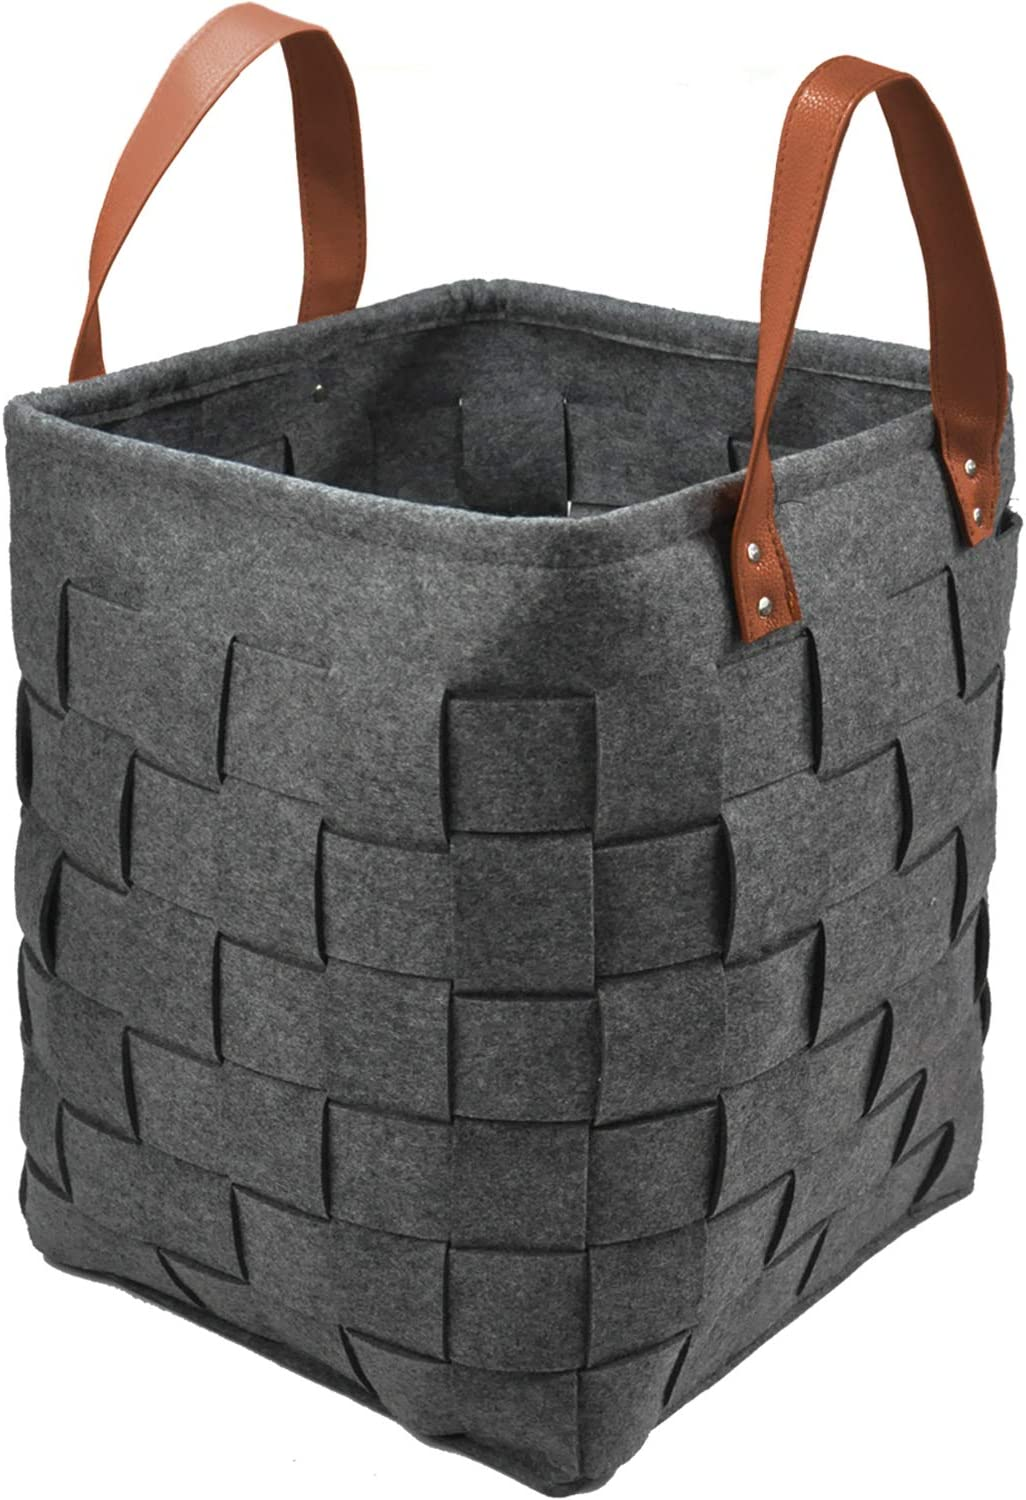 """GOHOME Large Storage Baskets, Felt Organizer Storage Bin for Clothes, Blankets, Towels, Sofa Throws, Toys or Nursery, Large Decorative Laundry Hamper with Durable Handles(12.5""""x12.5""""x15.8""""/40L)"""